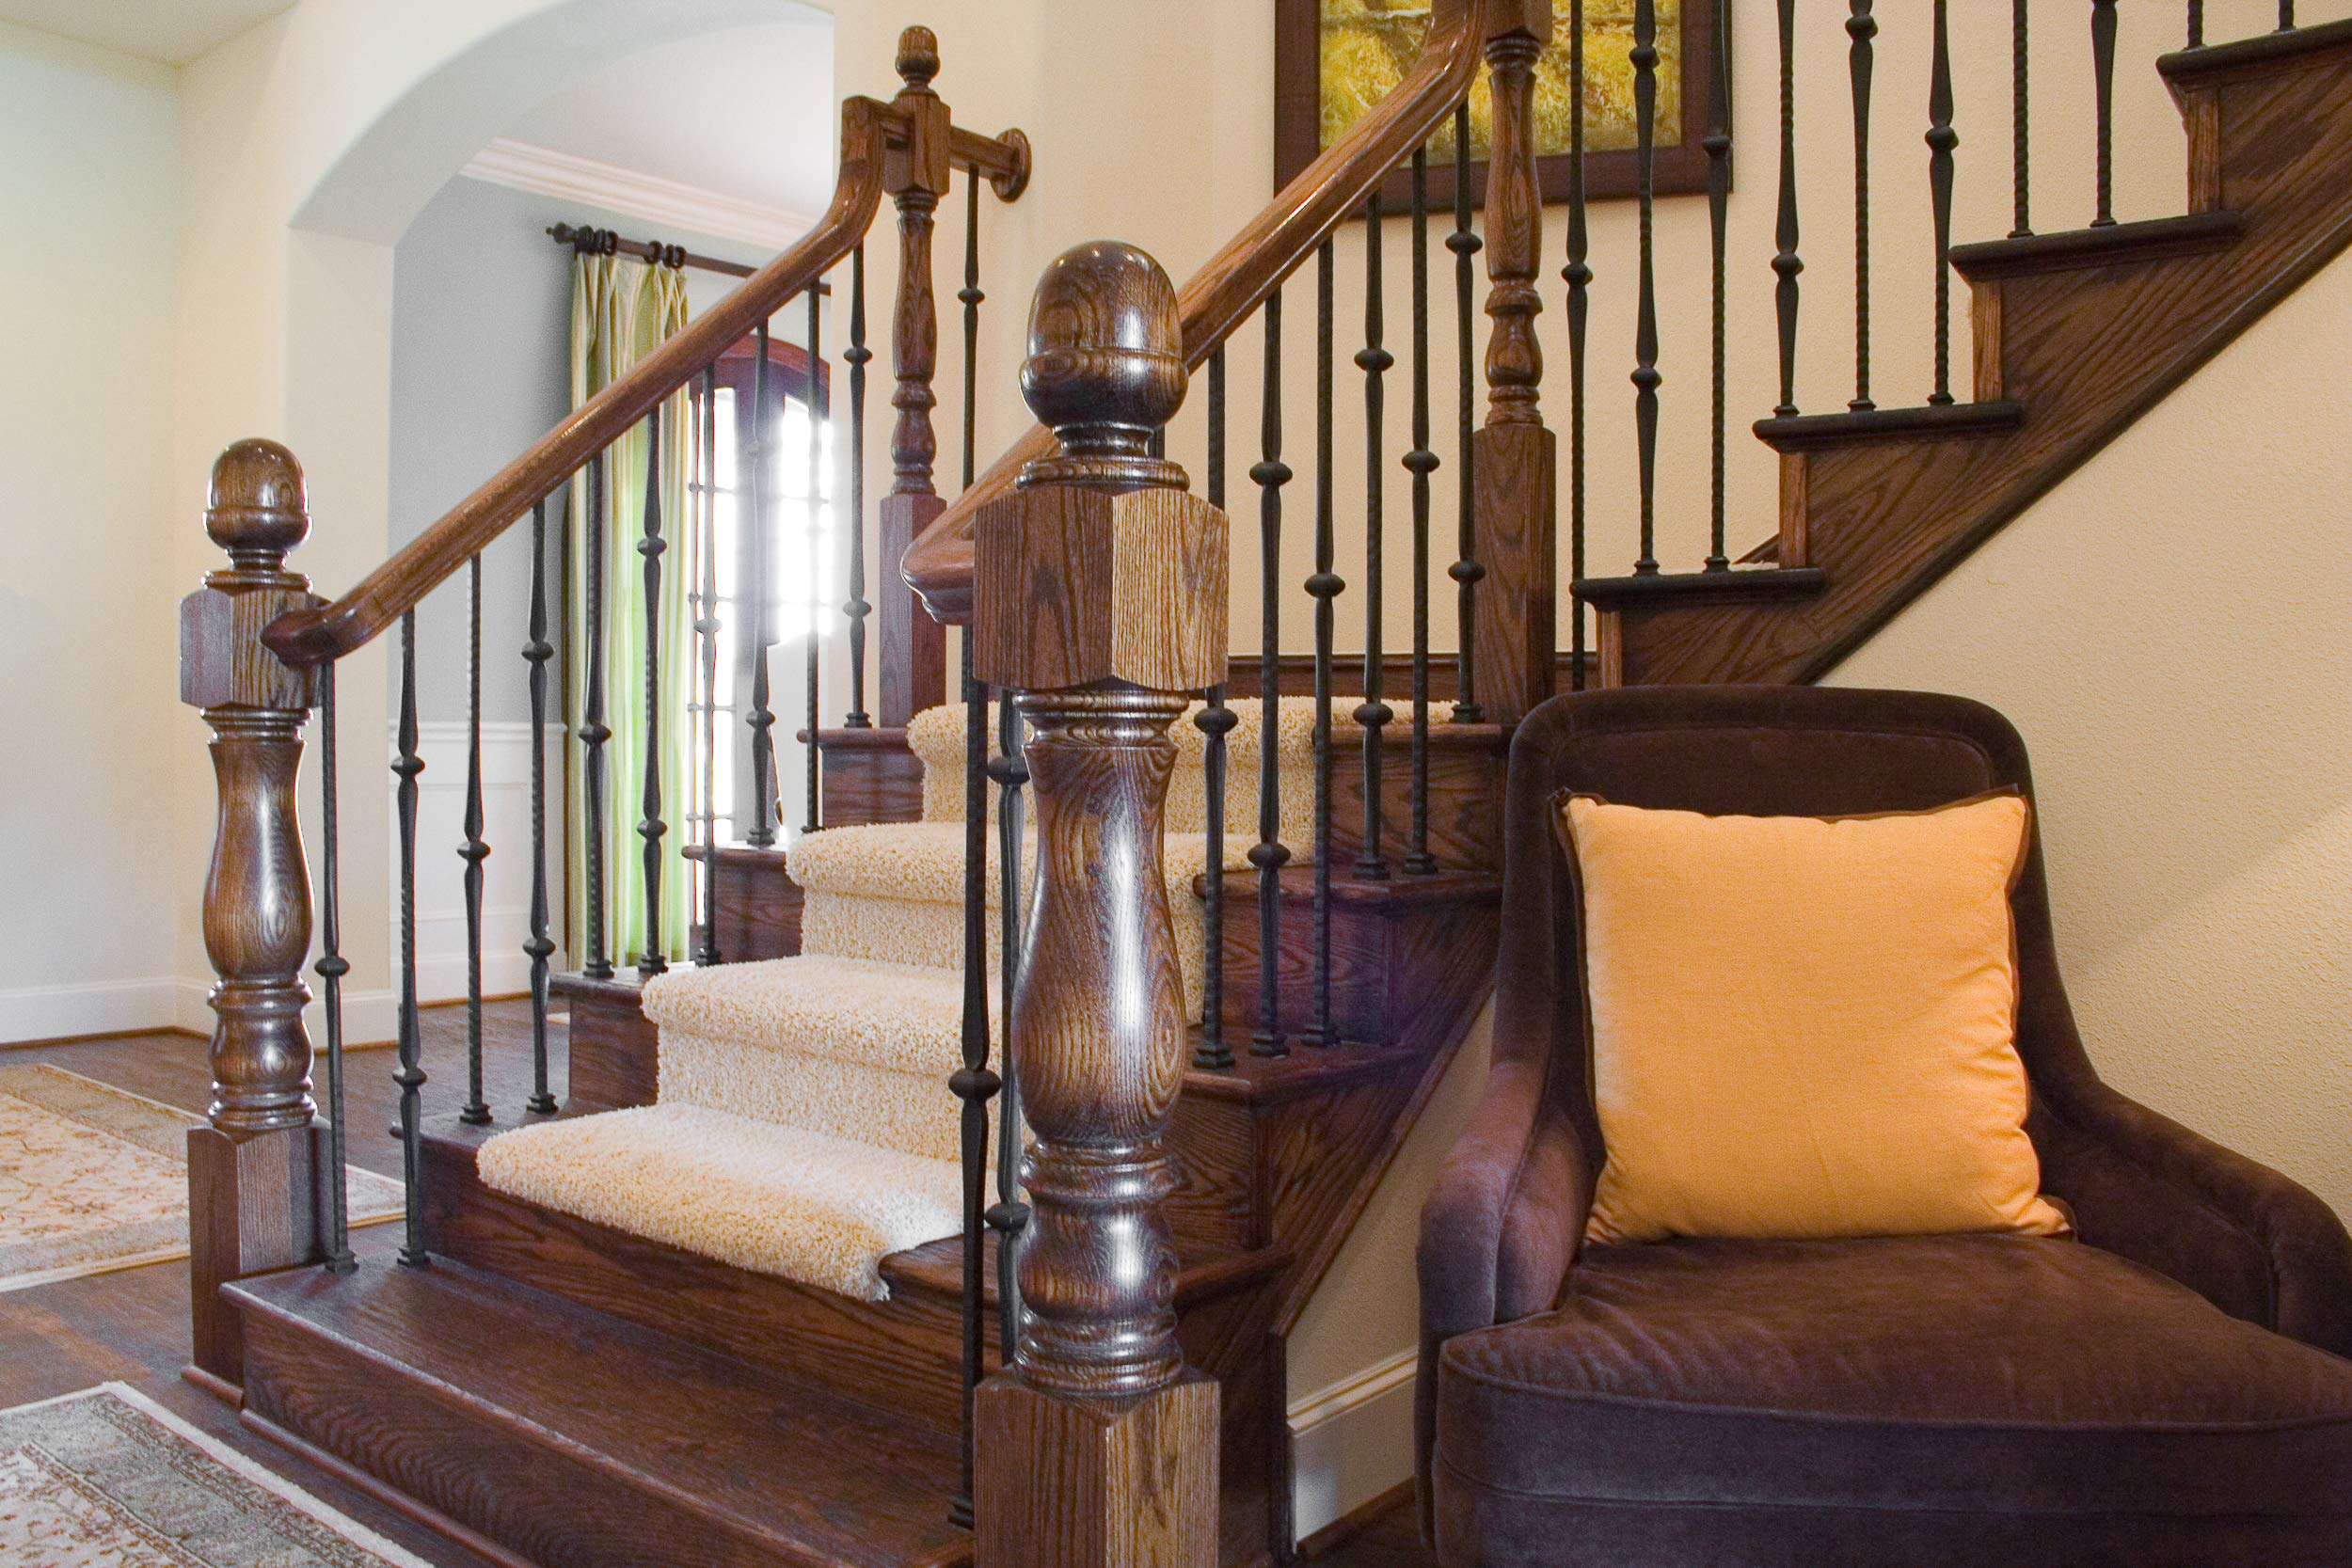 Red Oak 5160 3-1/4 x 54 inch Traditional Style Wood Newel Post for Stair Remodeling by House of Forgings